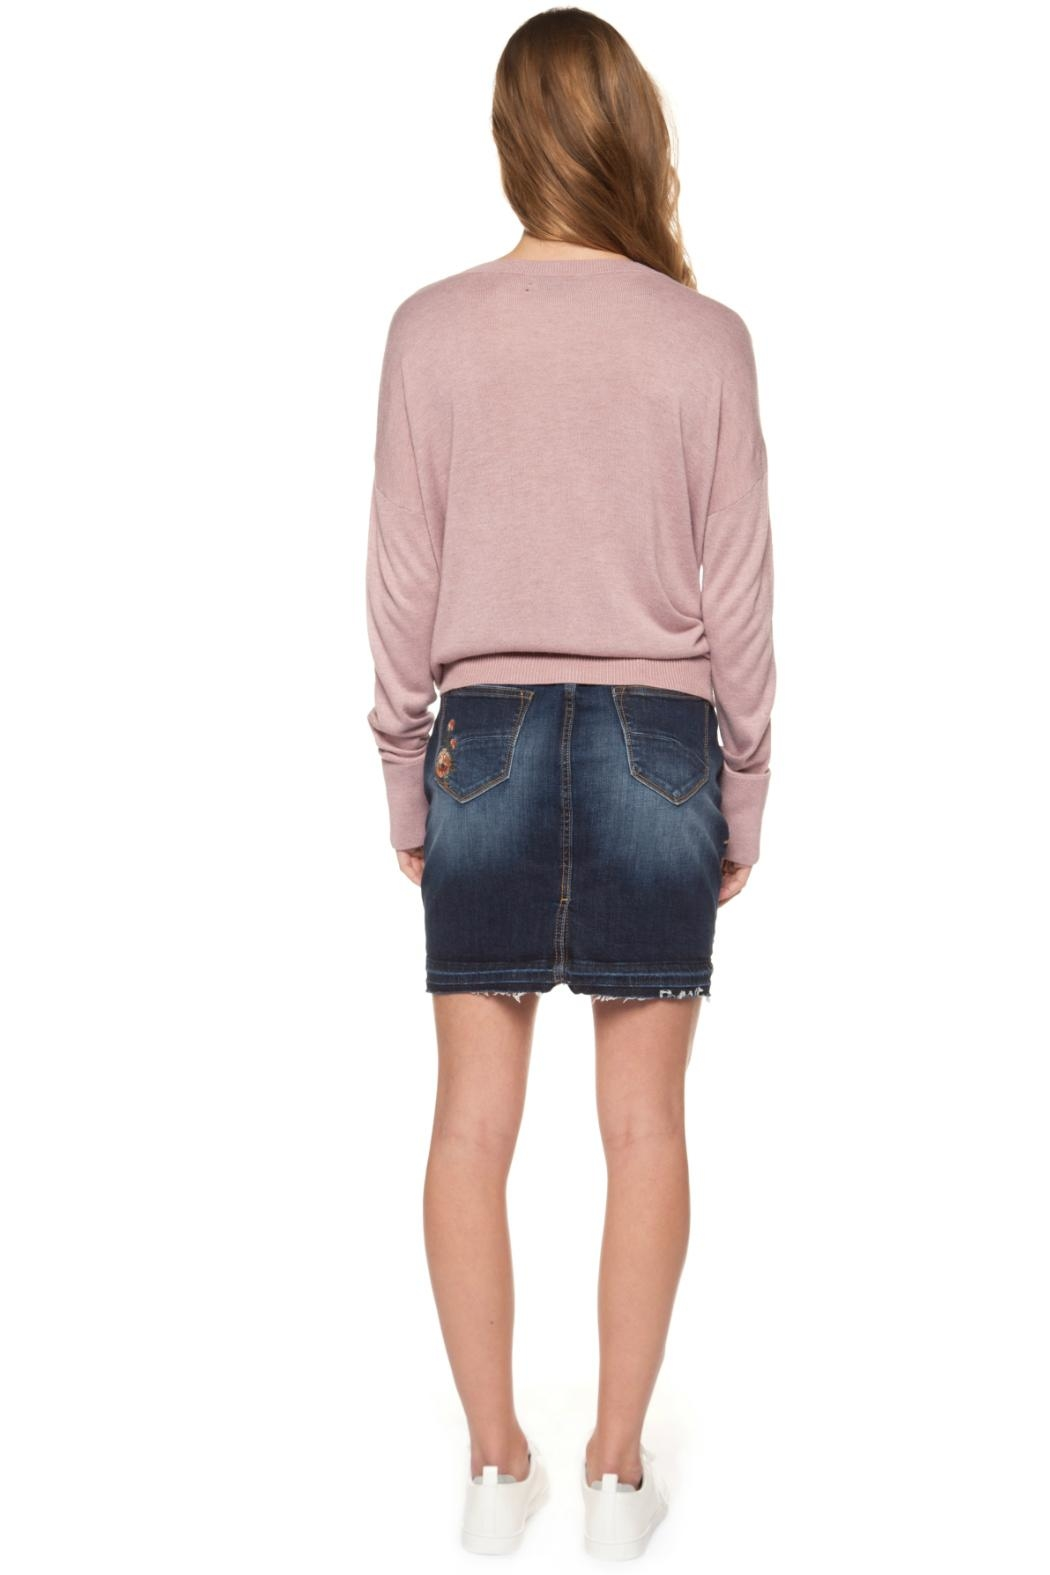 Dex Knotted Sweater - Side Cropped Image